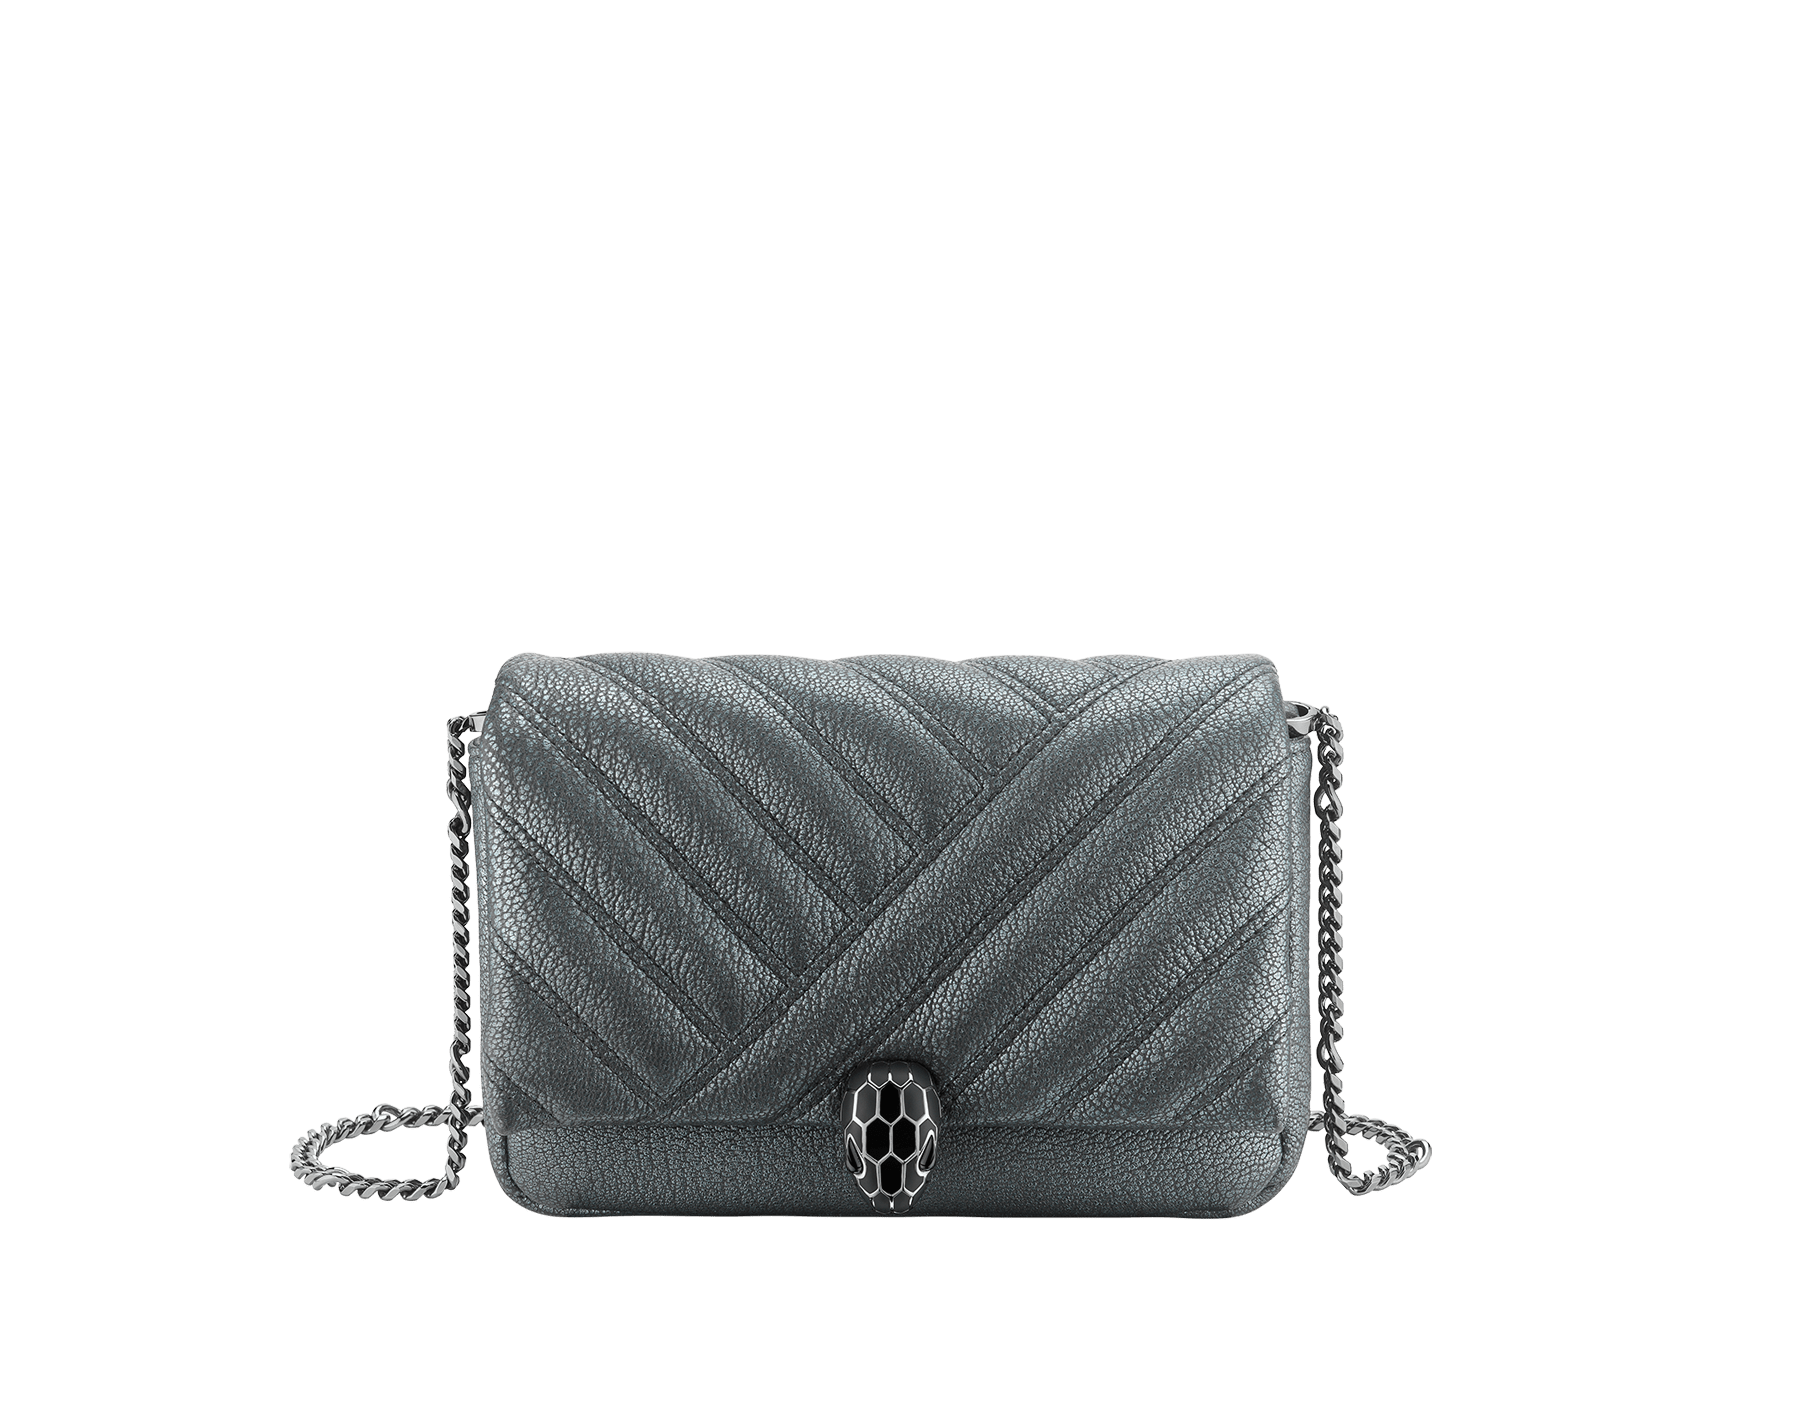 """Serpenti Cabochon"" crossbody mini bag in soft matelassé charcoal diamond goatskin with a pearled effect and a graphic motif. Brass palladium plated tempting snakehead closure in matte and shiny black enamel and black onyx eyes. 290276 image 1"